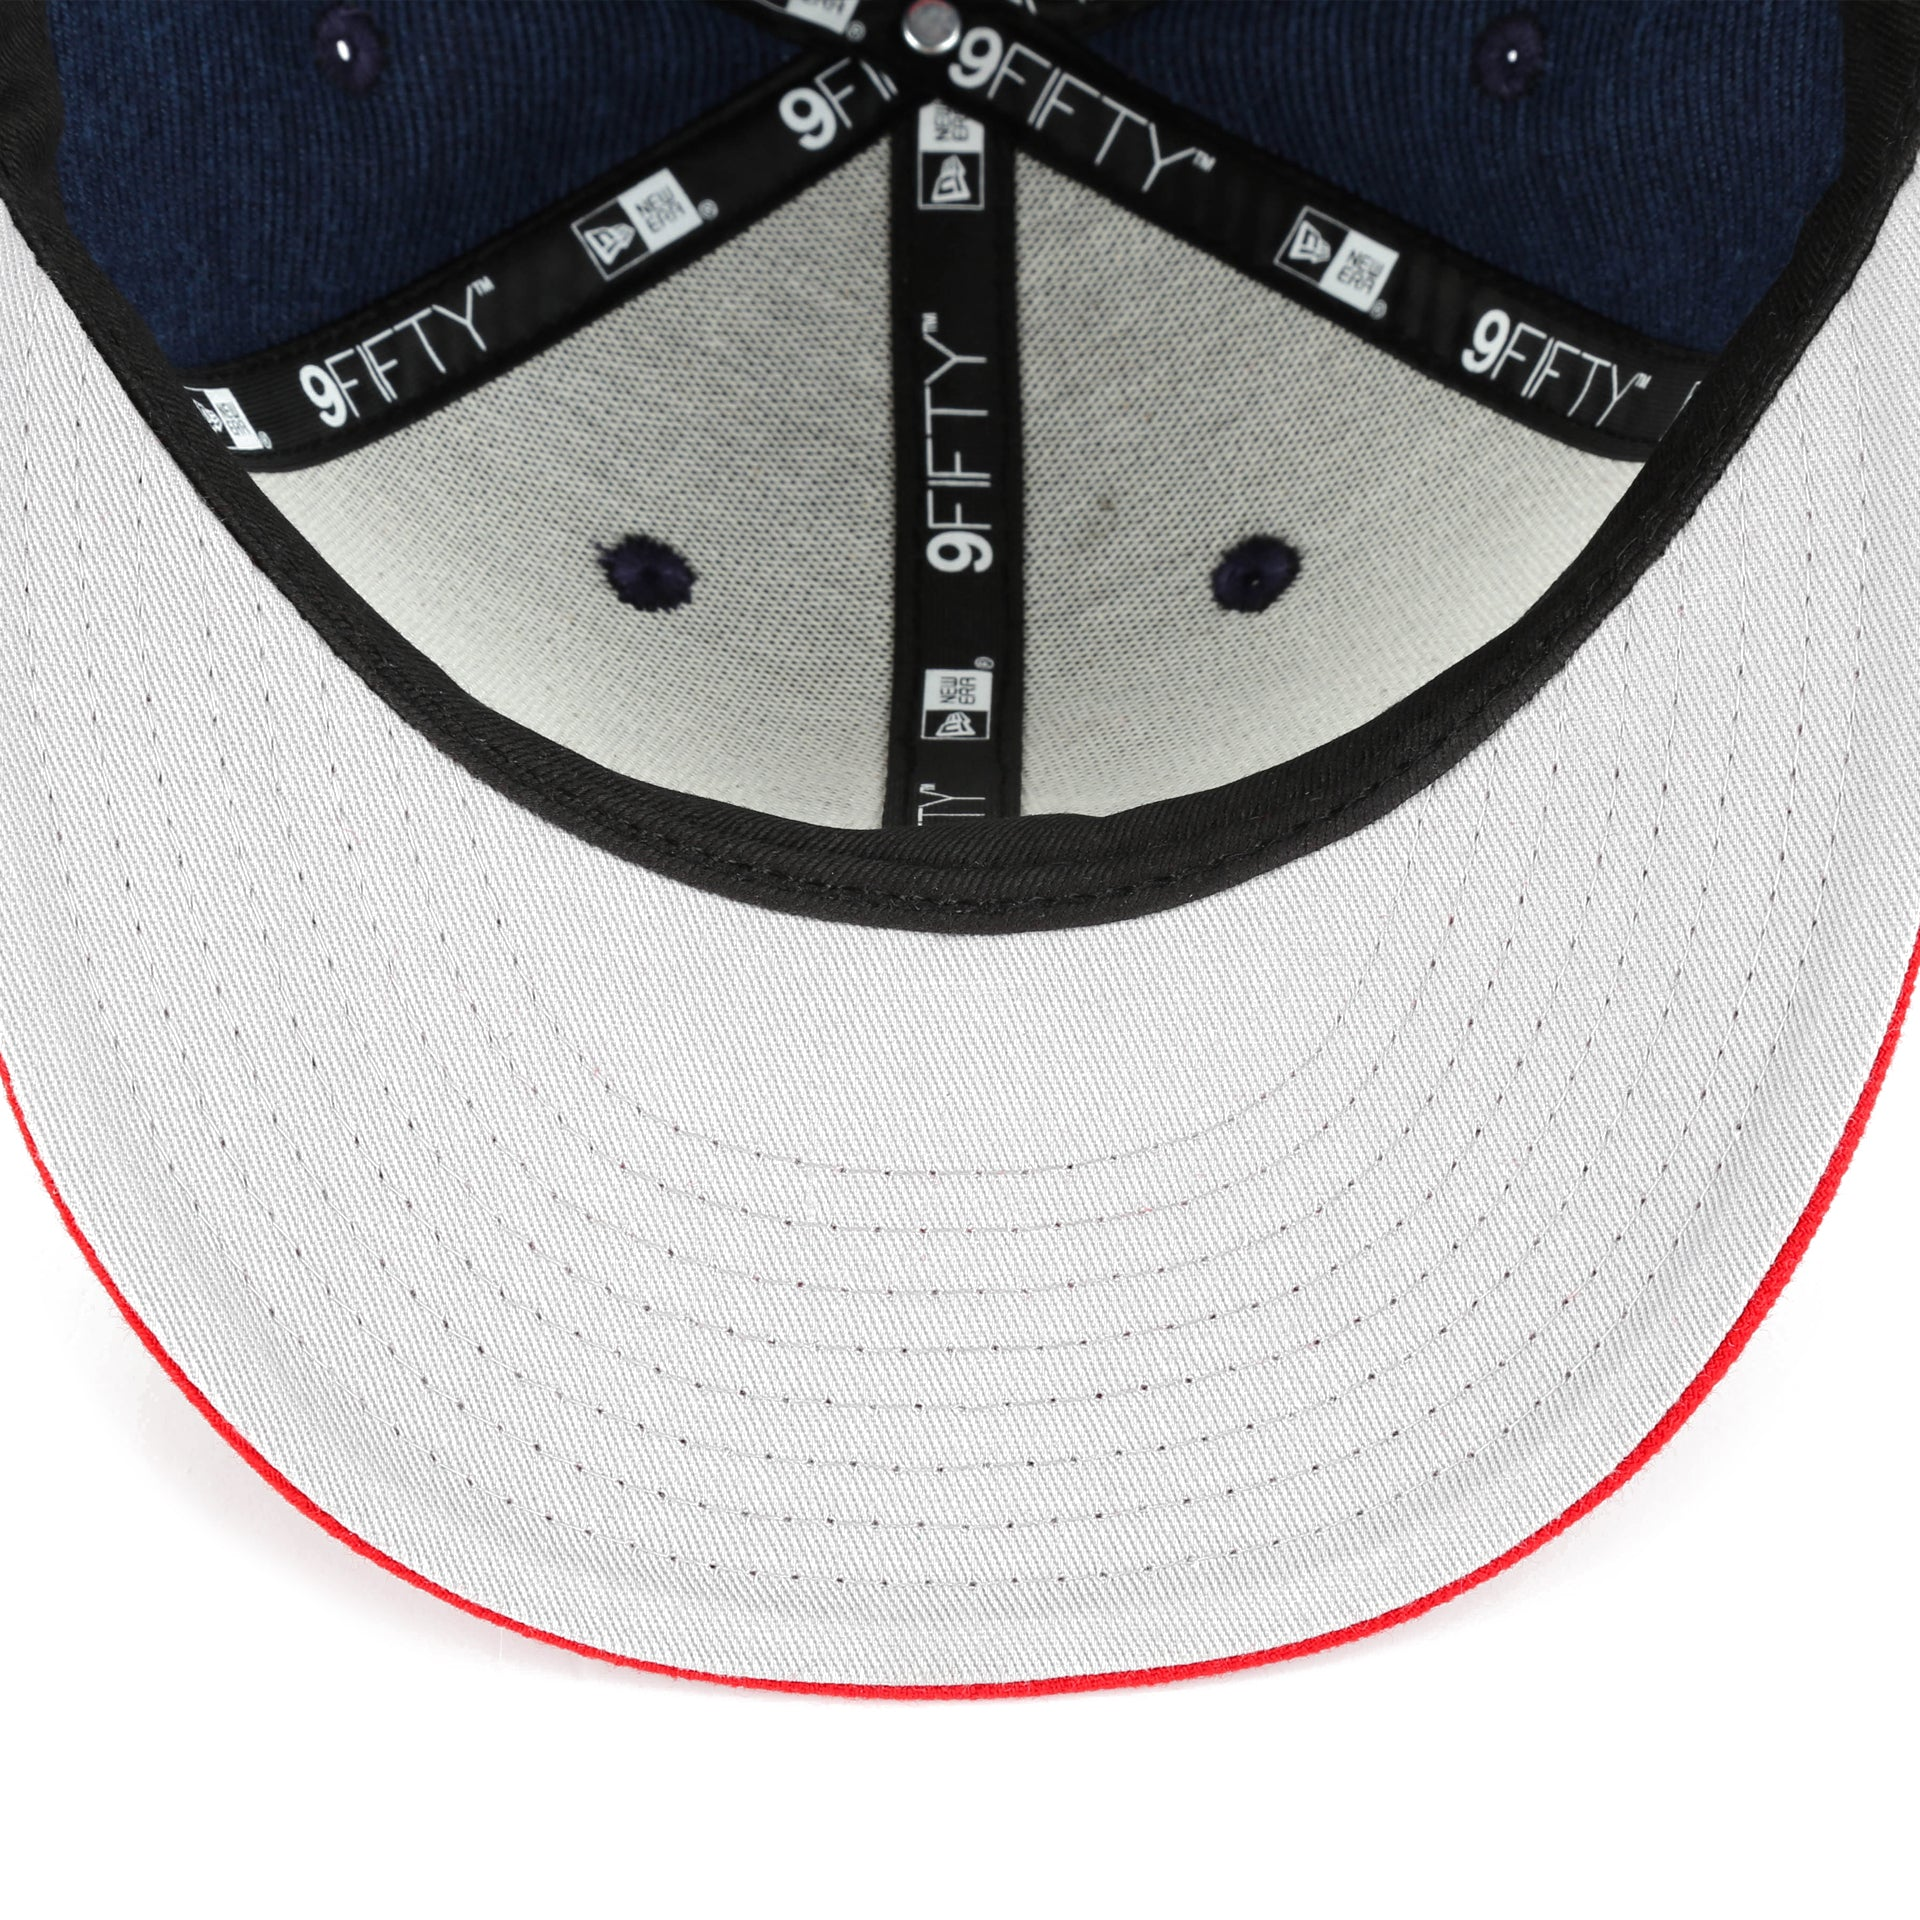 competitive price 0a440 30ffc New Era 9Fifty Classic Trim Snapback - Boston Red Sox Navy